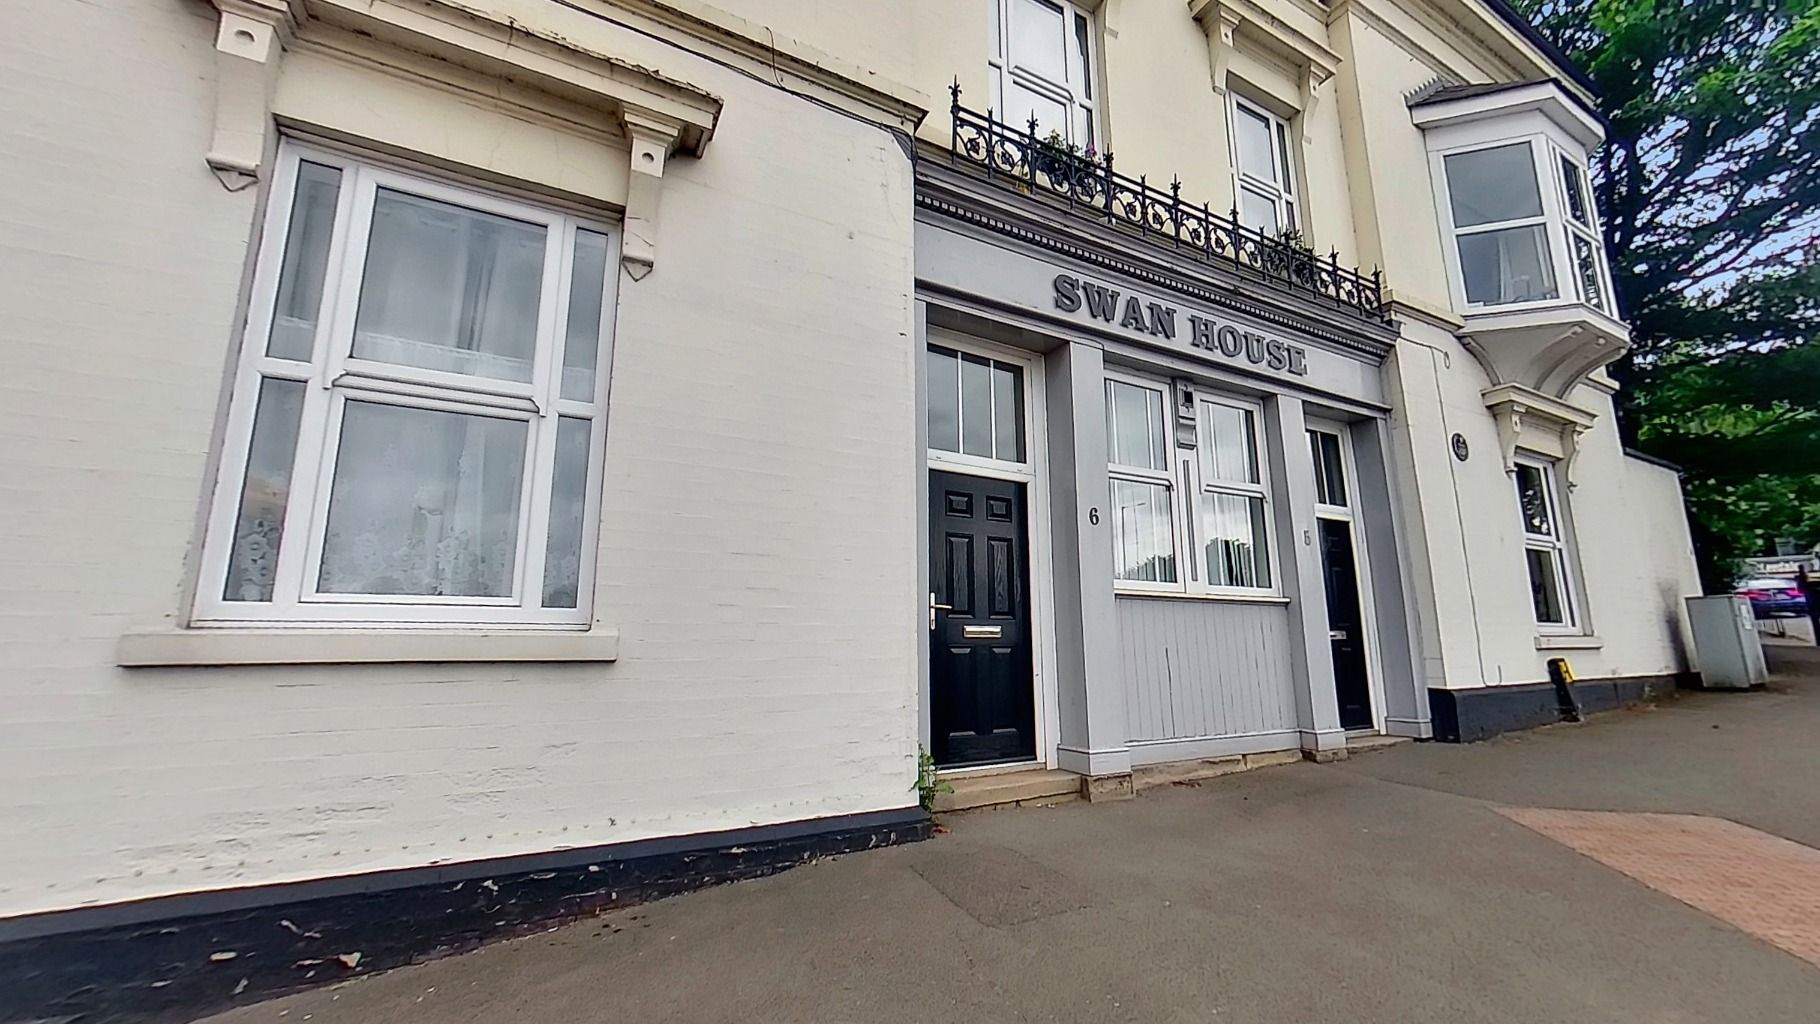 Property photo 1 of 7. Apartment-4-Swan-House-Copy-07122021_165634